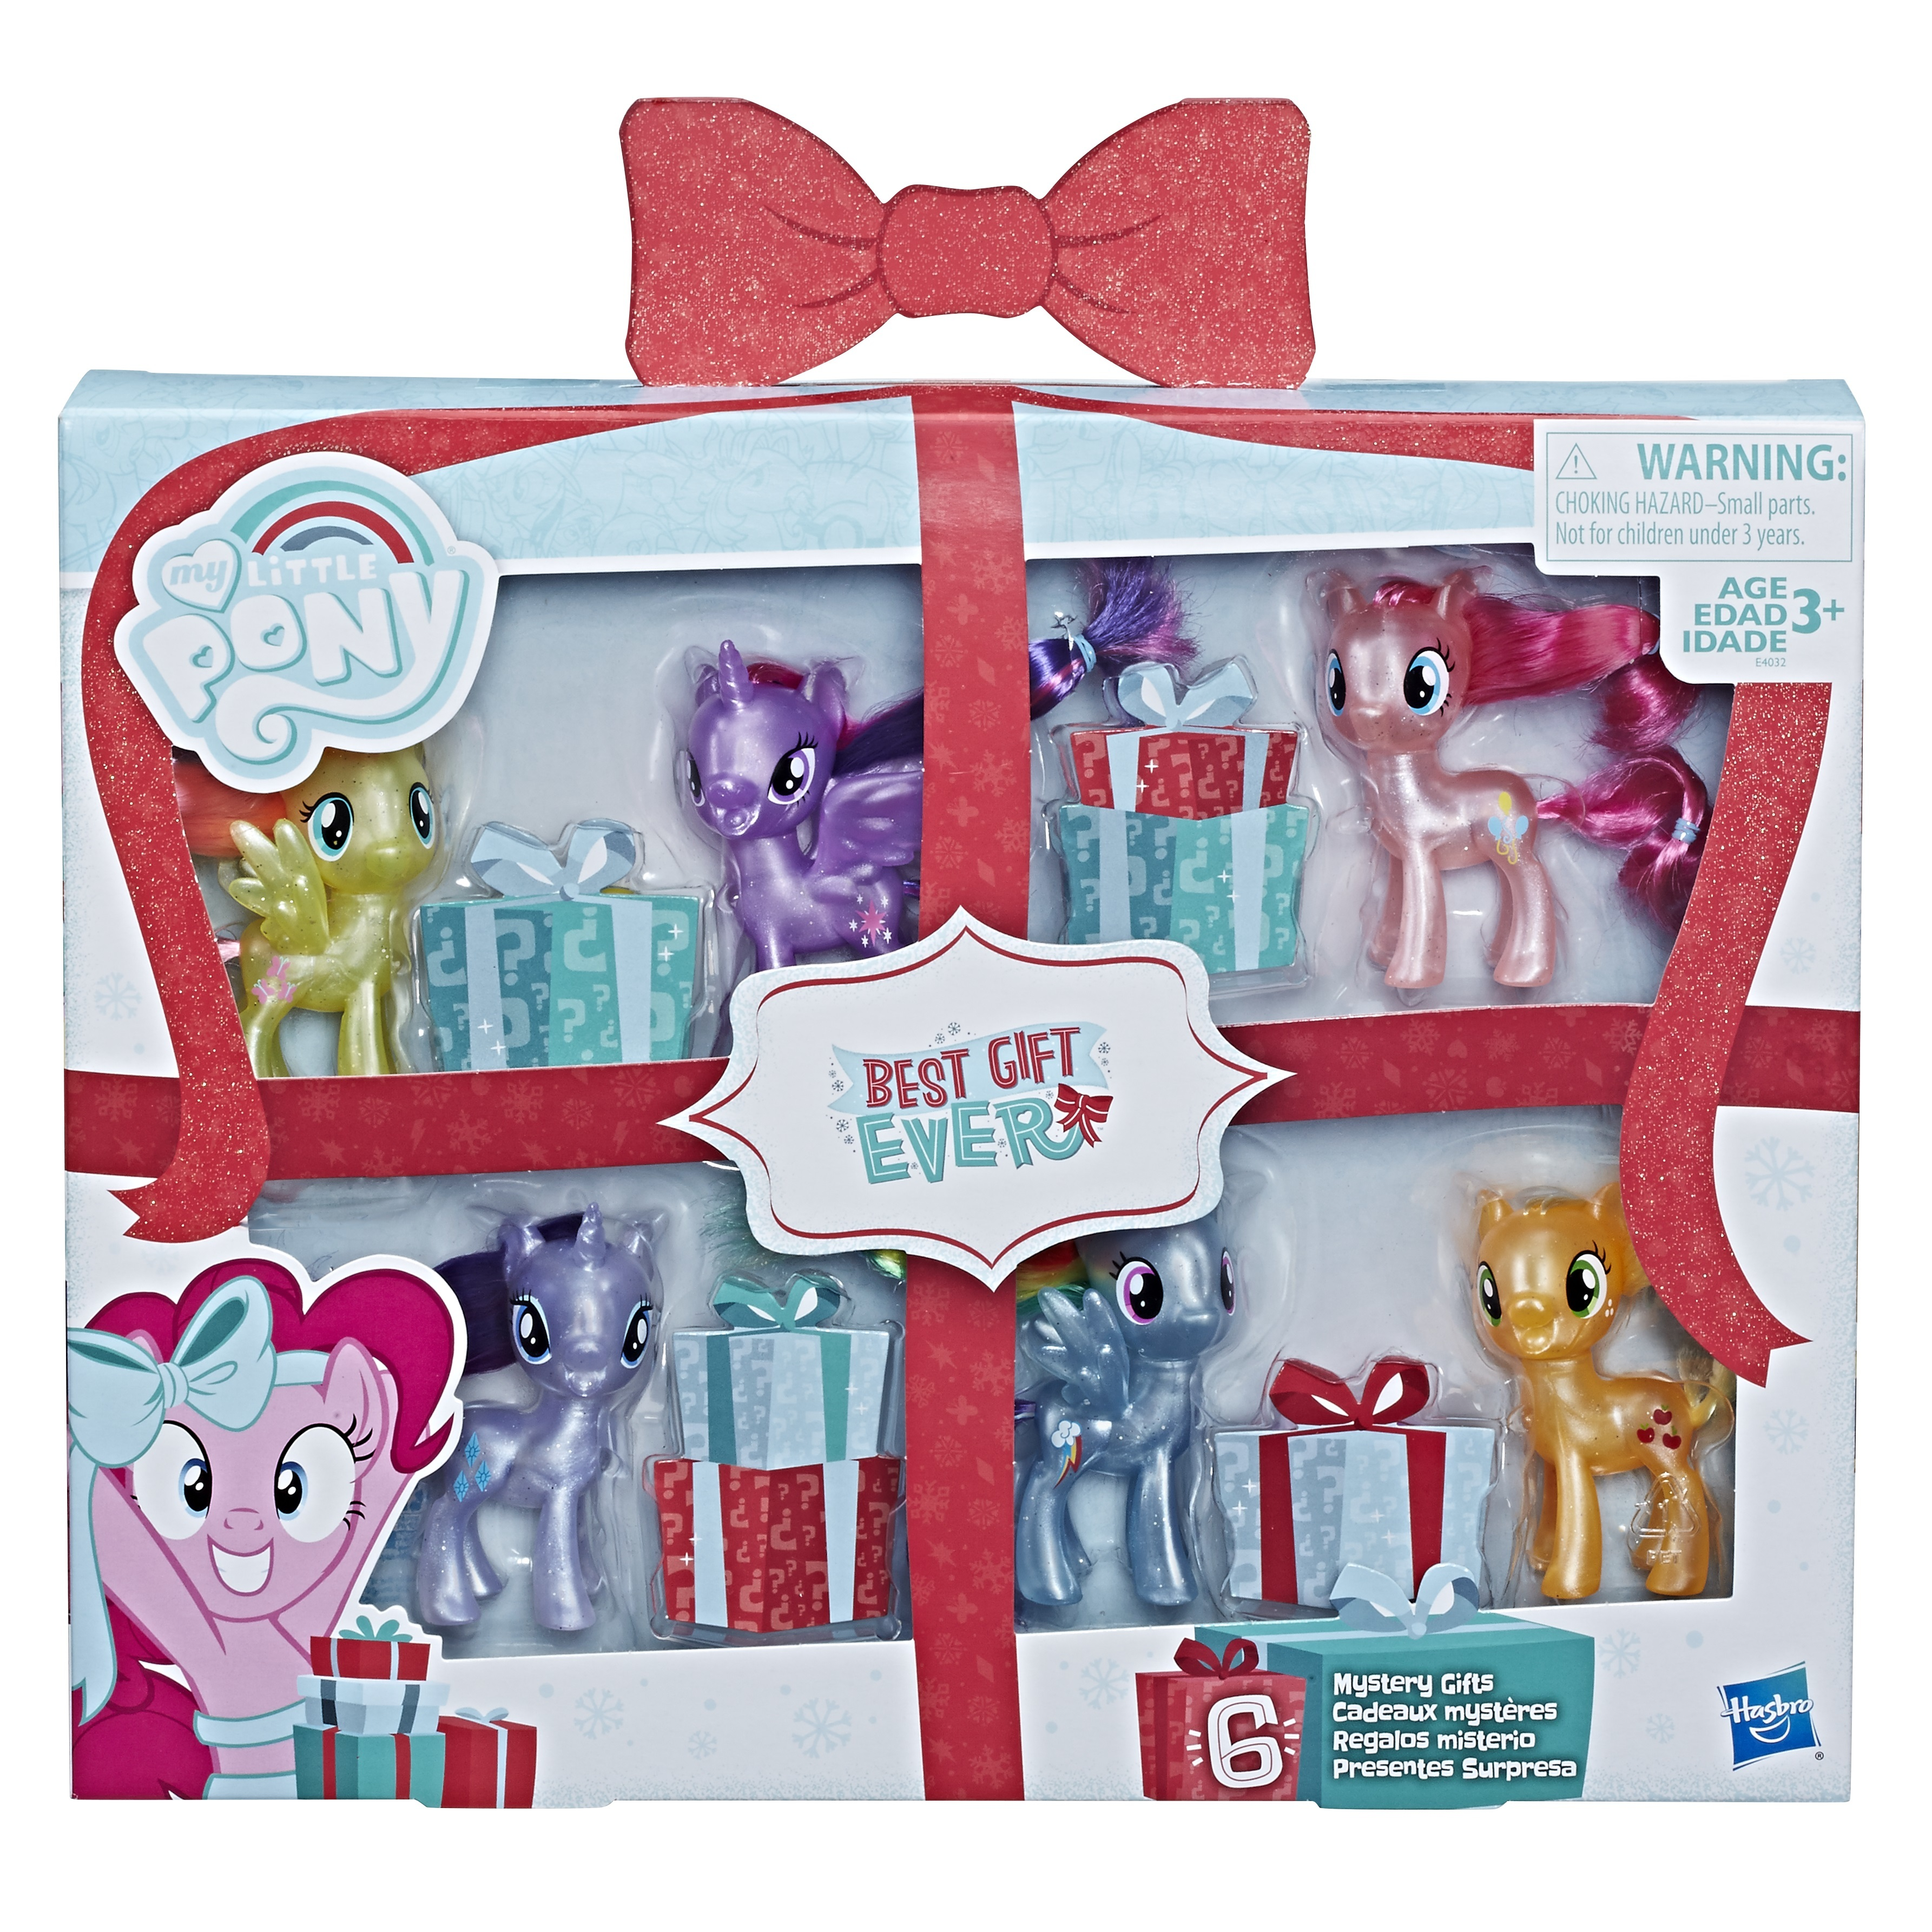 Your Kids Can Now Speak to Their Favorite My Little Pony on the Phone